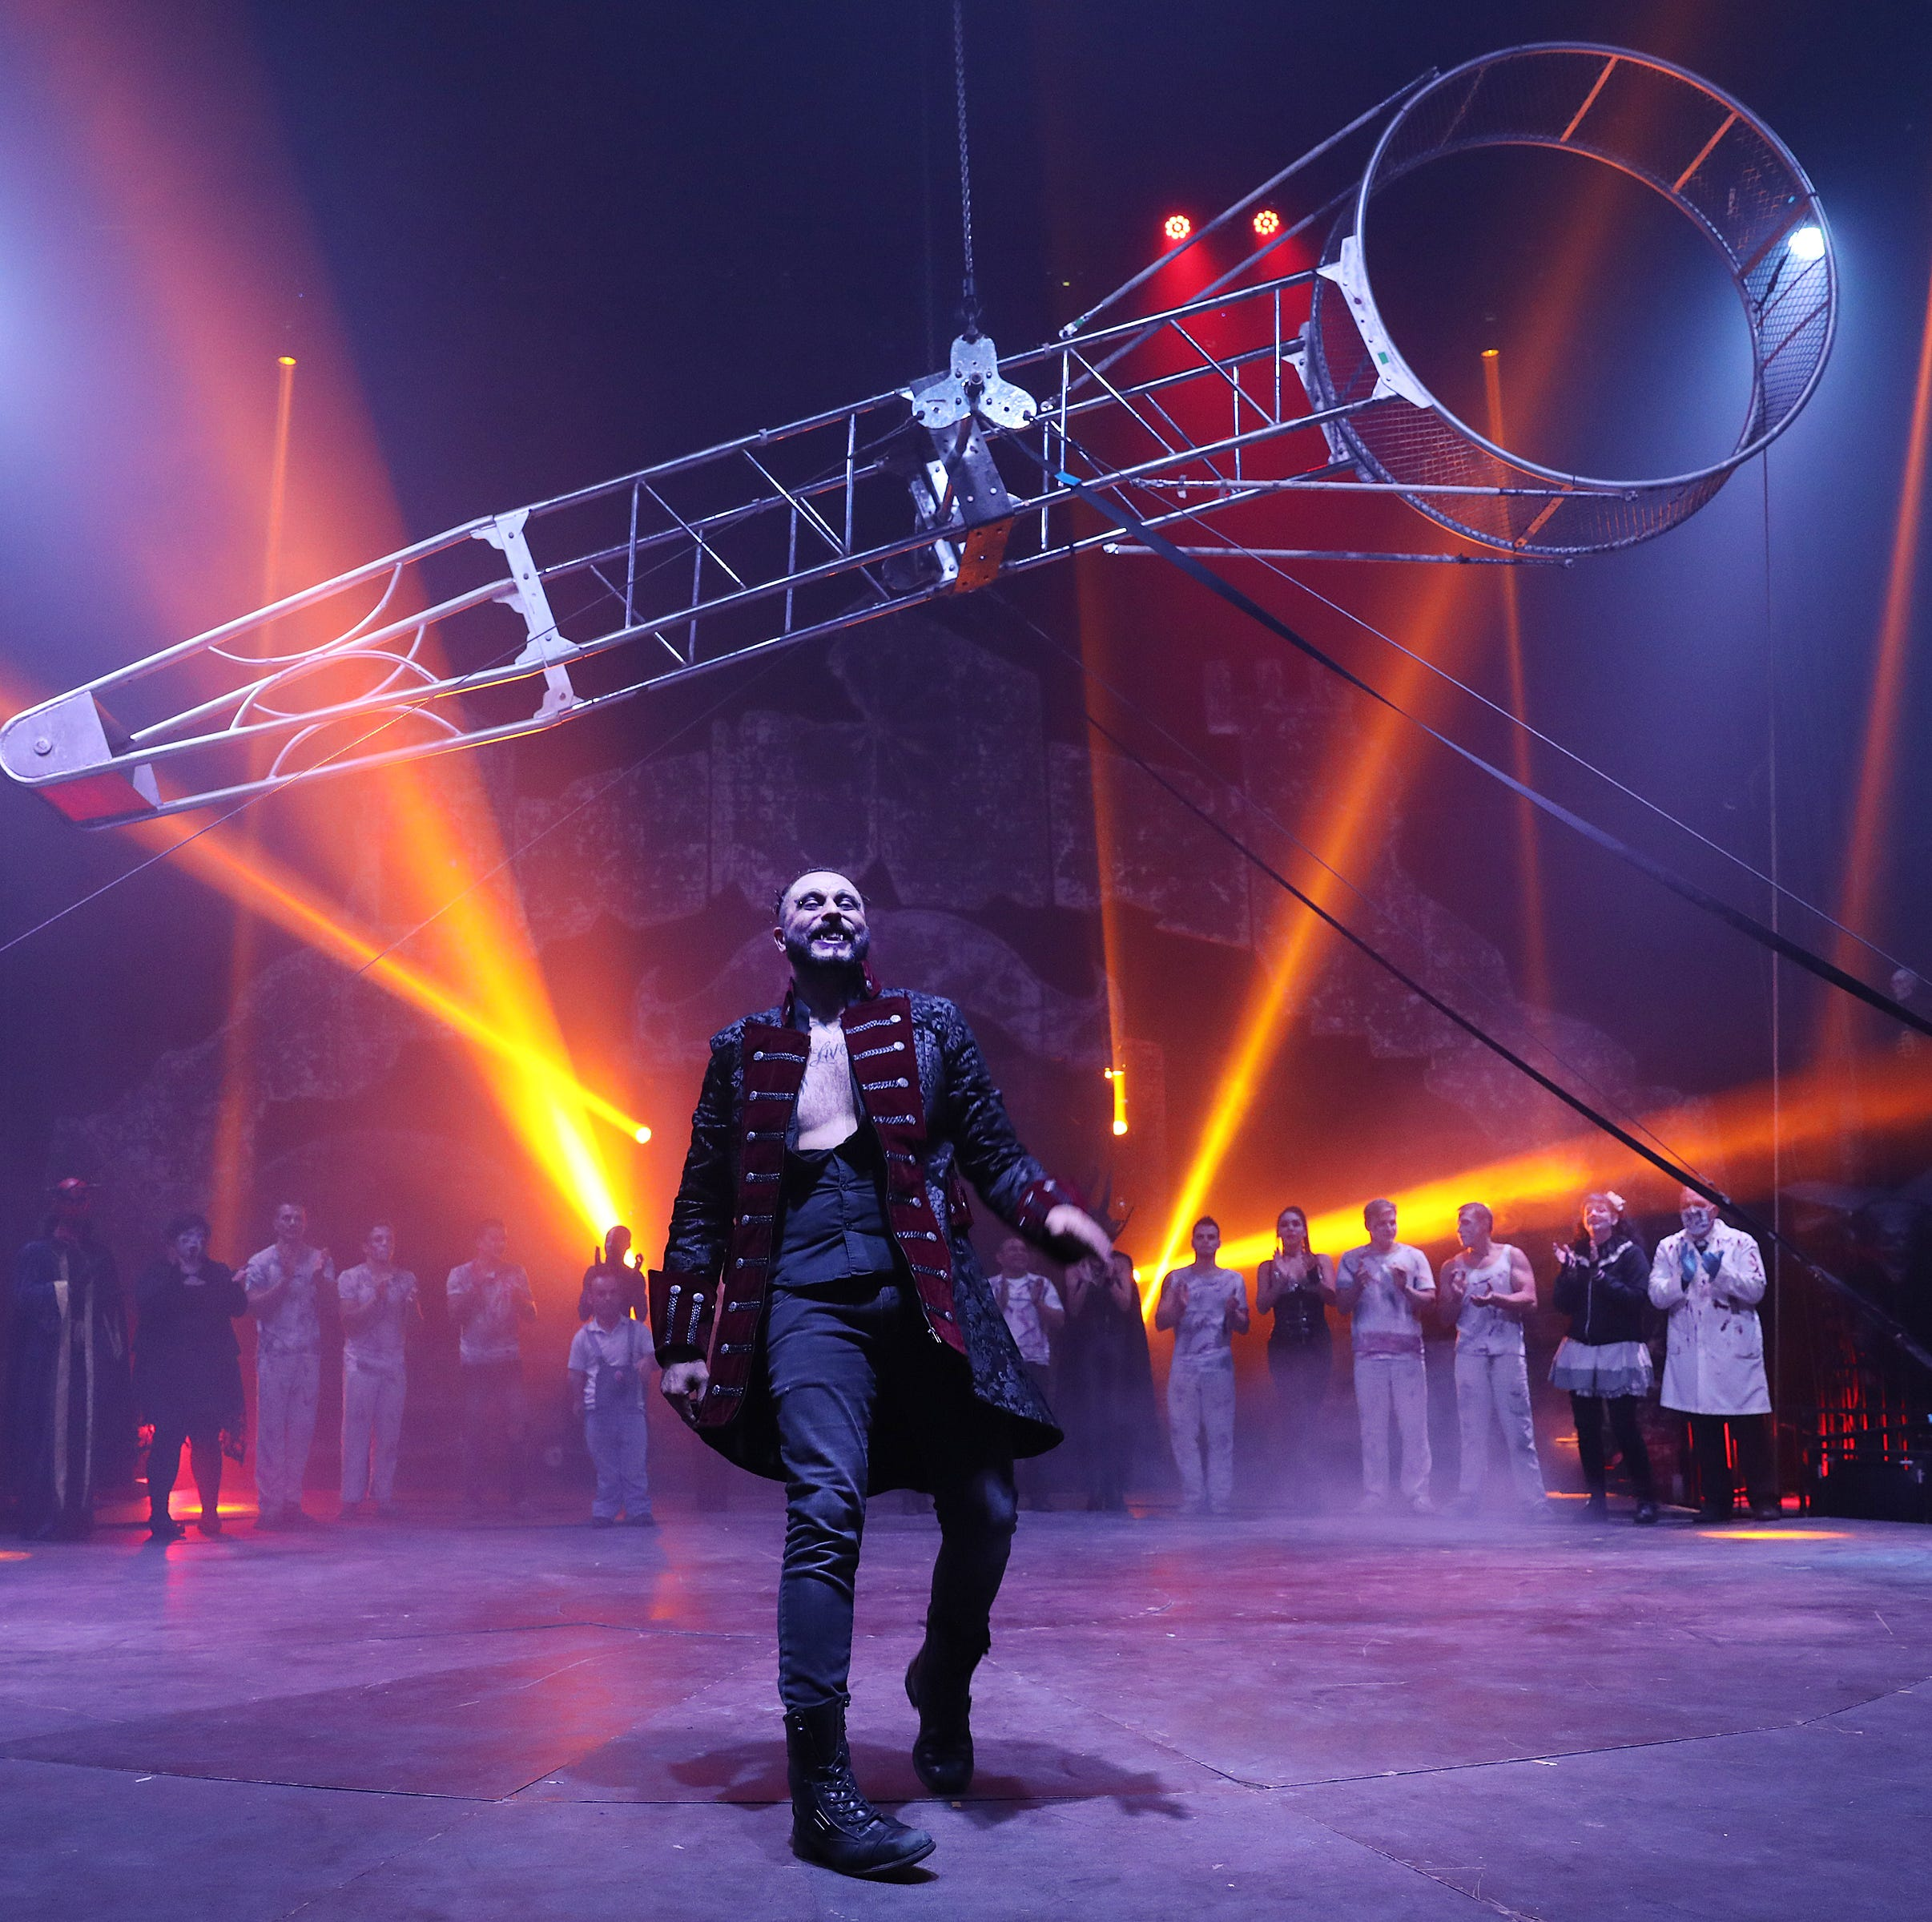 Paranormal Cirque brings a scare to the Big Top